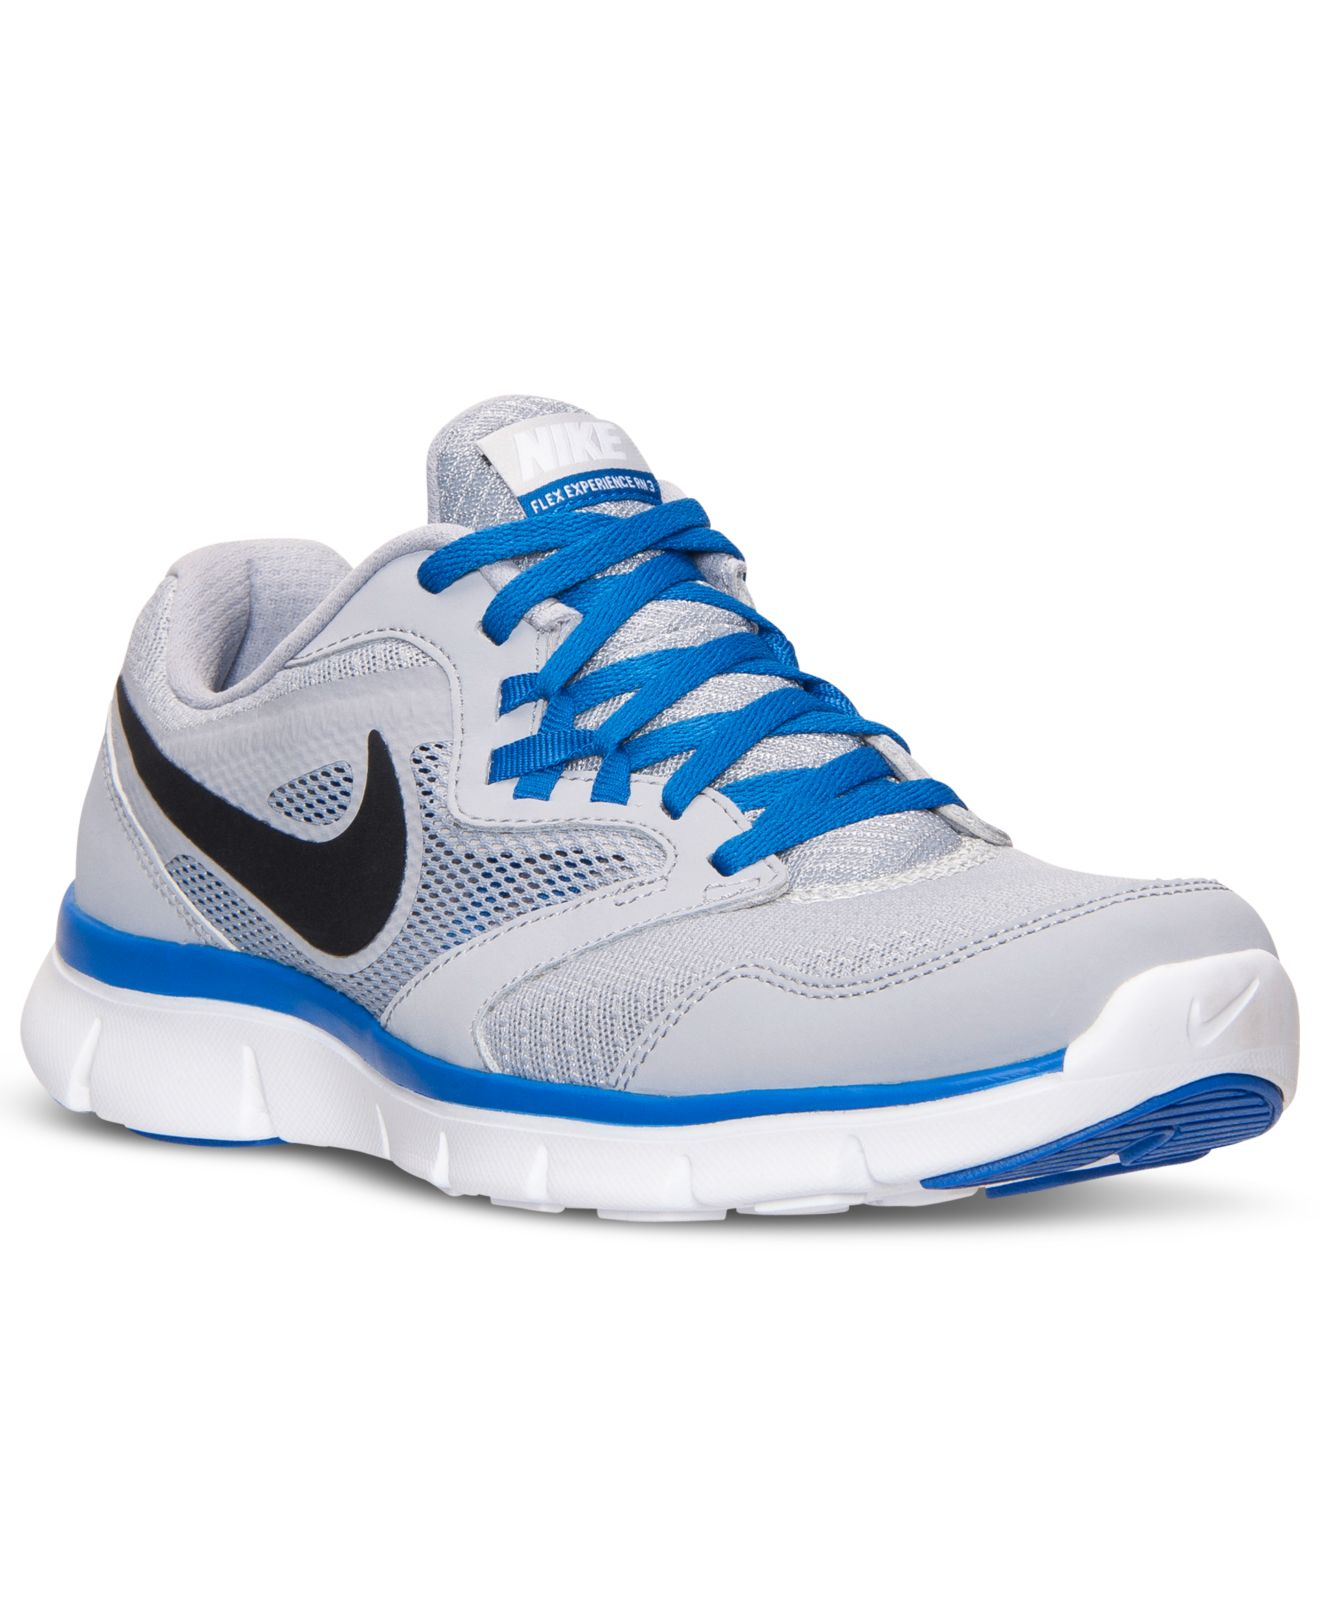 6a27a09fb9f70 Nike Gray Men's Flex Experience Run 3 Wide Running Sneakers From Finish  Line for men